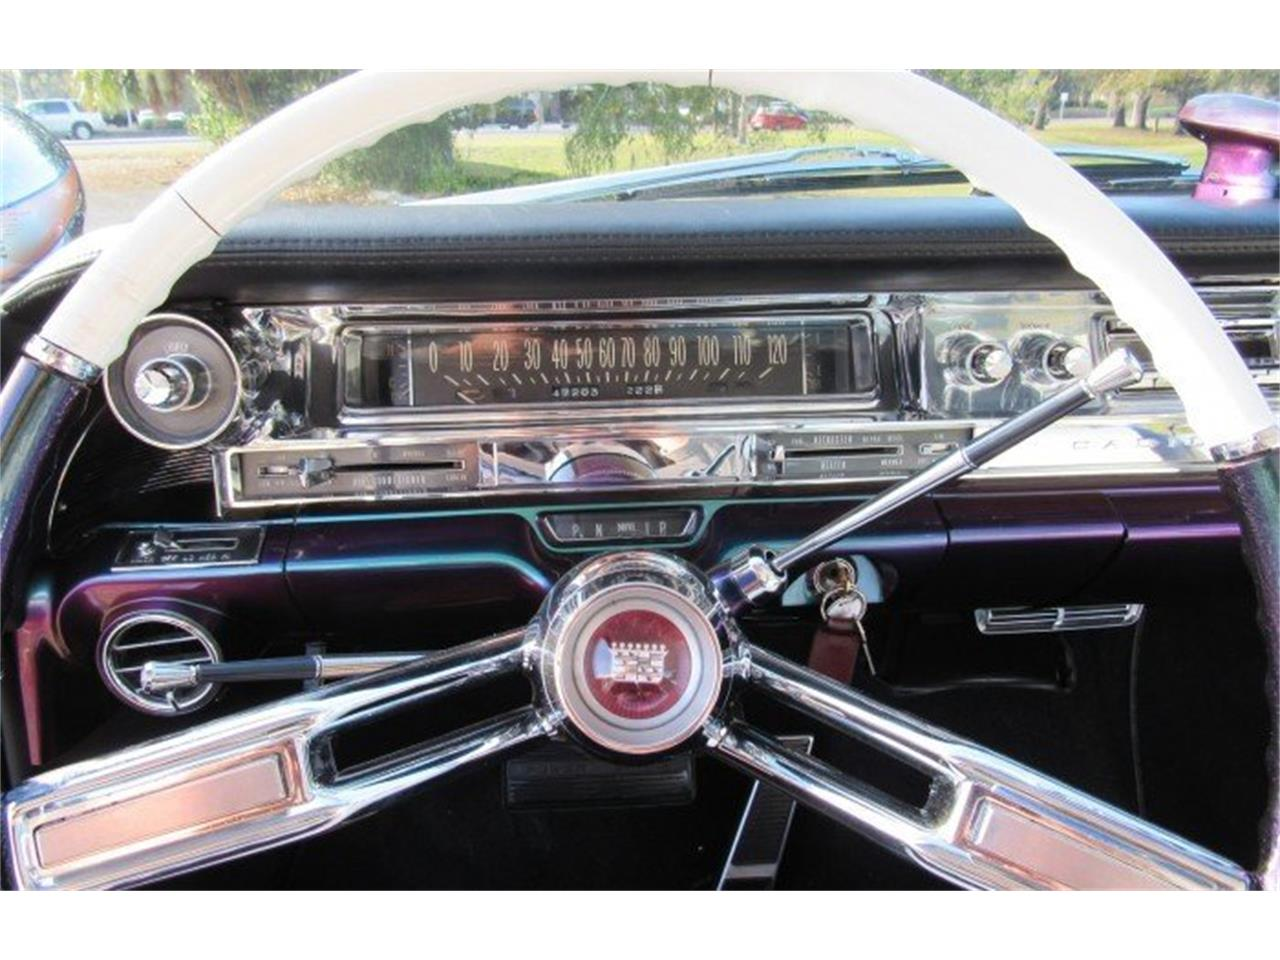 Large Picture of 1961 Series 62 located in Punta Gorda Florida Auction Vehicle - PH11